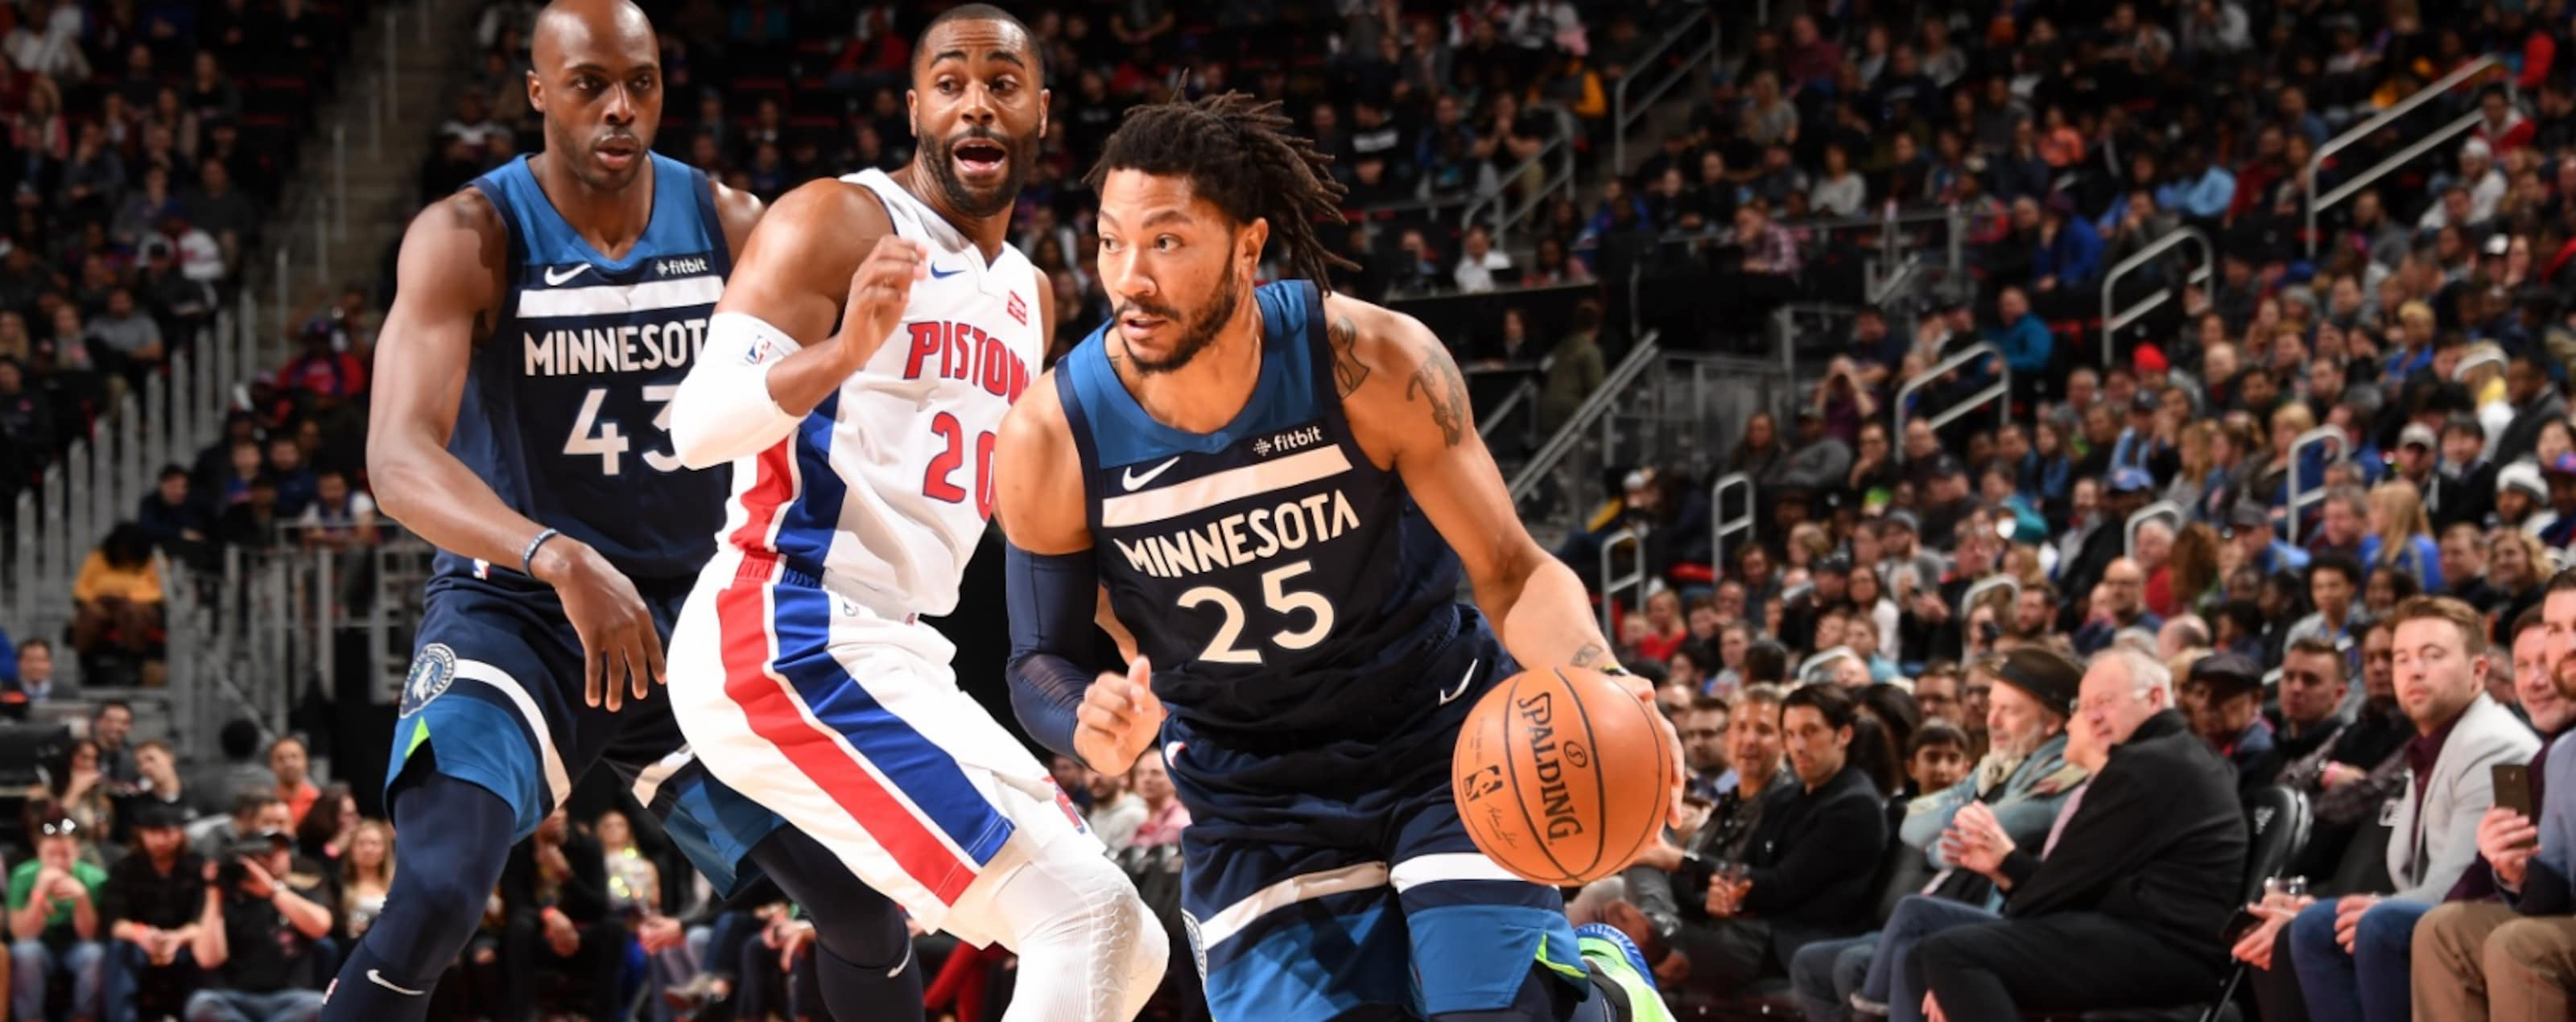 Derrick Rose drives to the basket